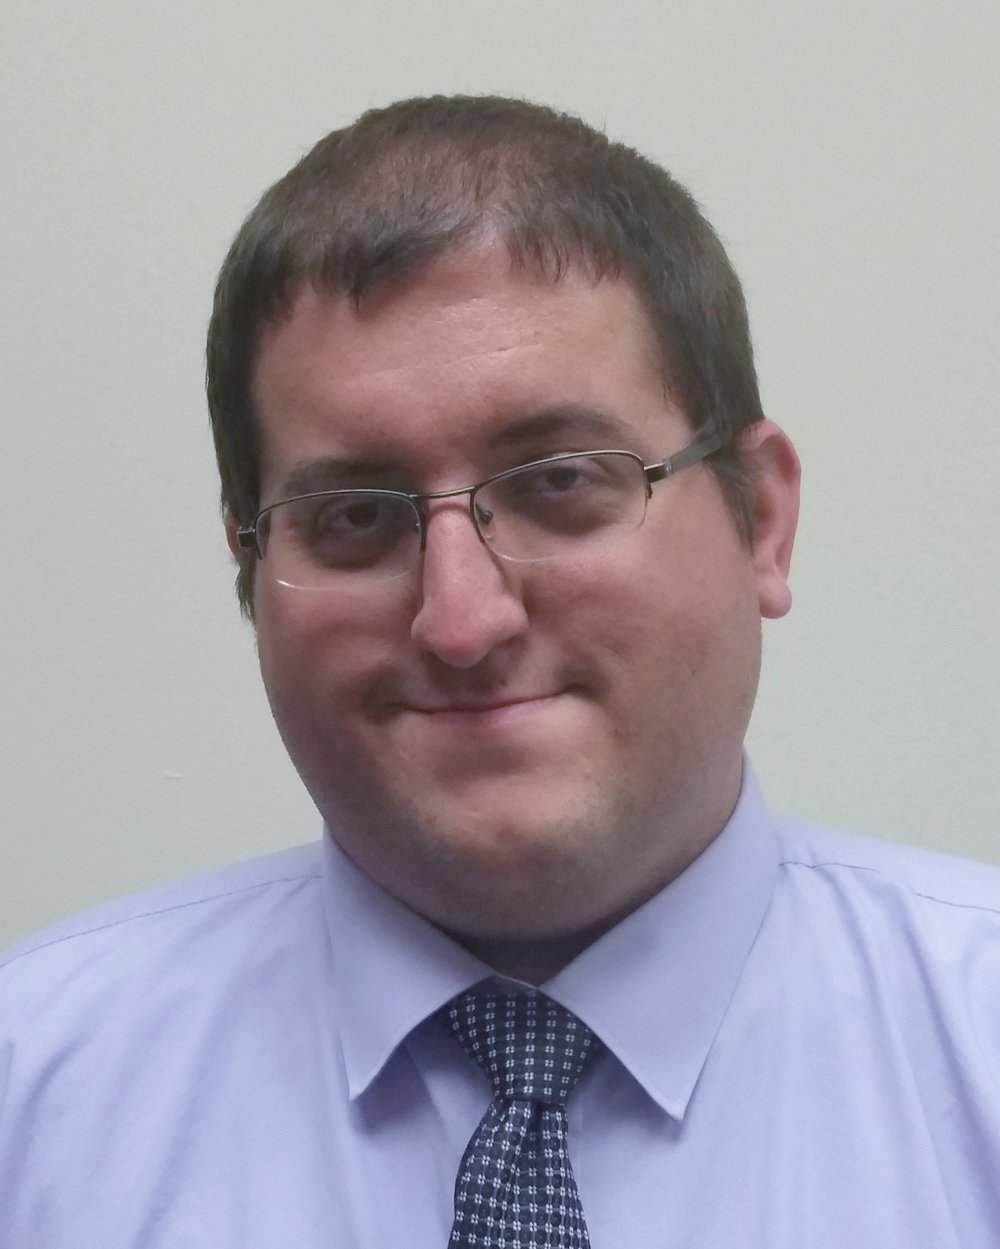 Mathew Gulizia - Information Technology Manager / CQI Manager